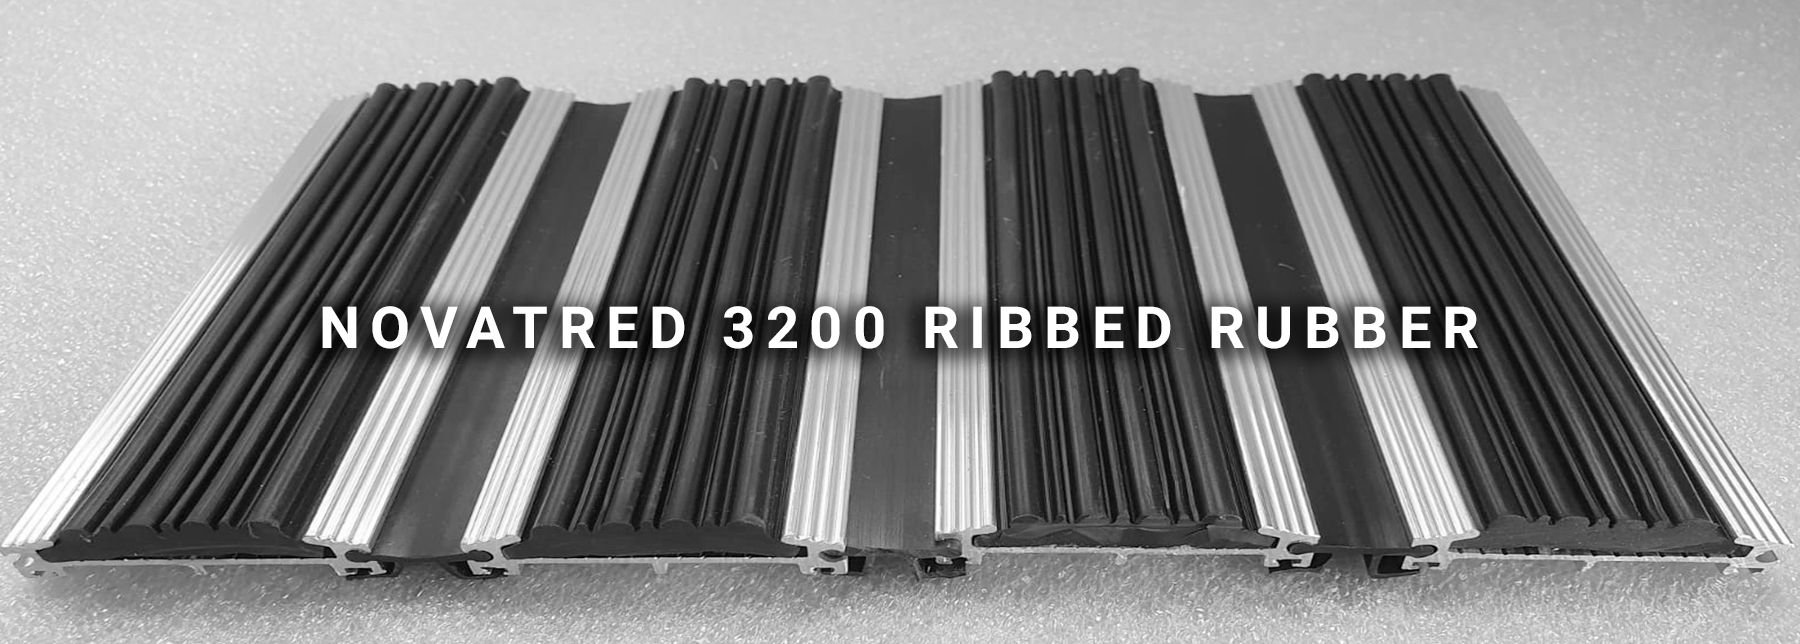 Novatred 3200 Ribbed Rubber